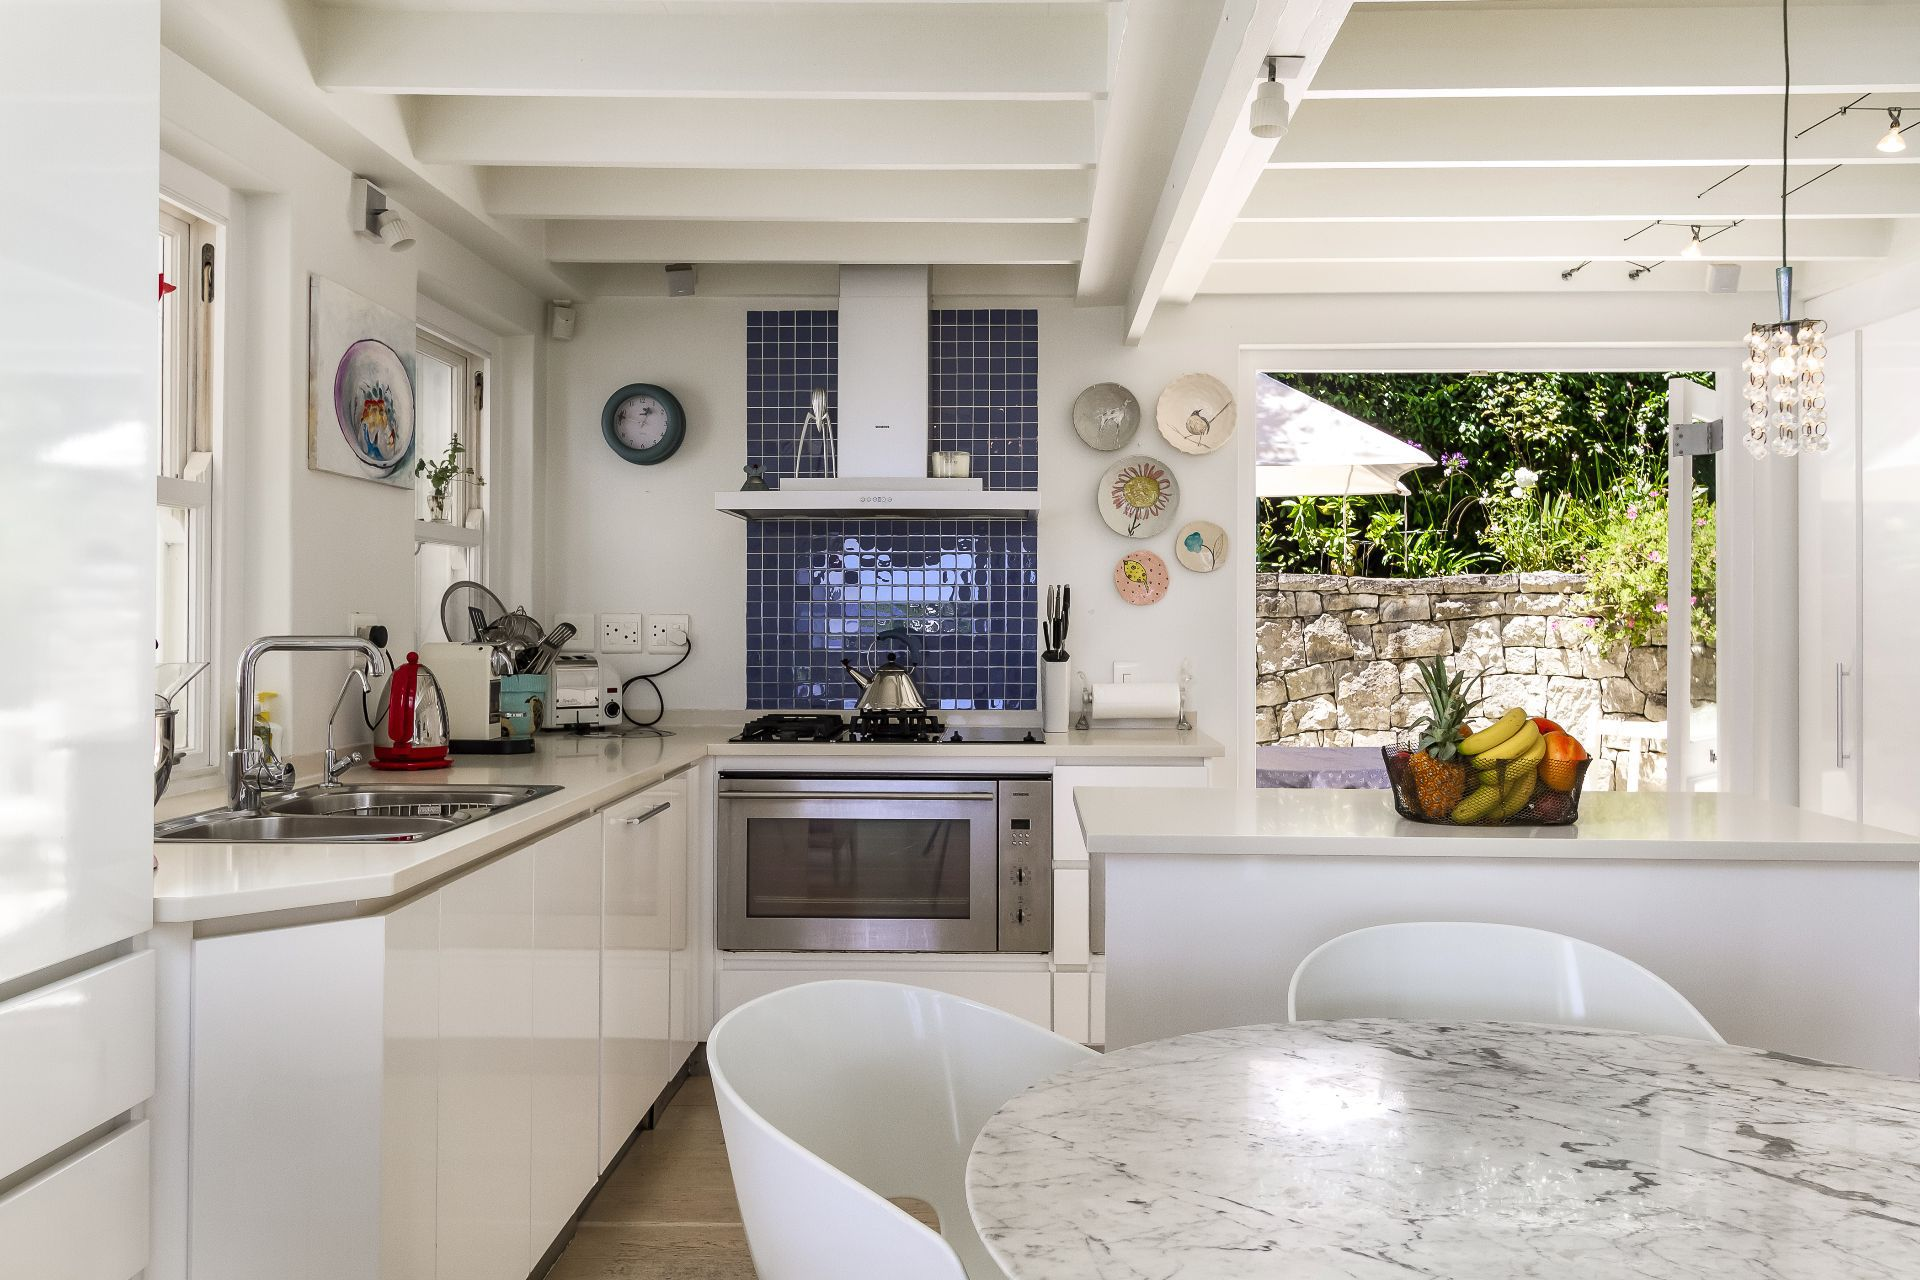 House in Clifton - Kitchen